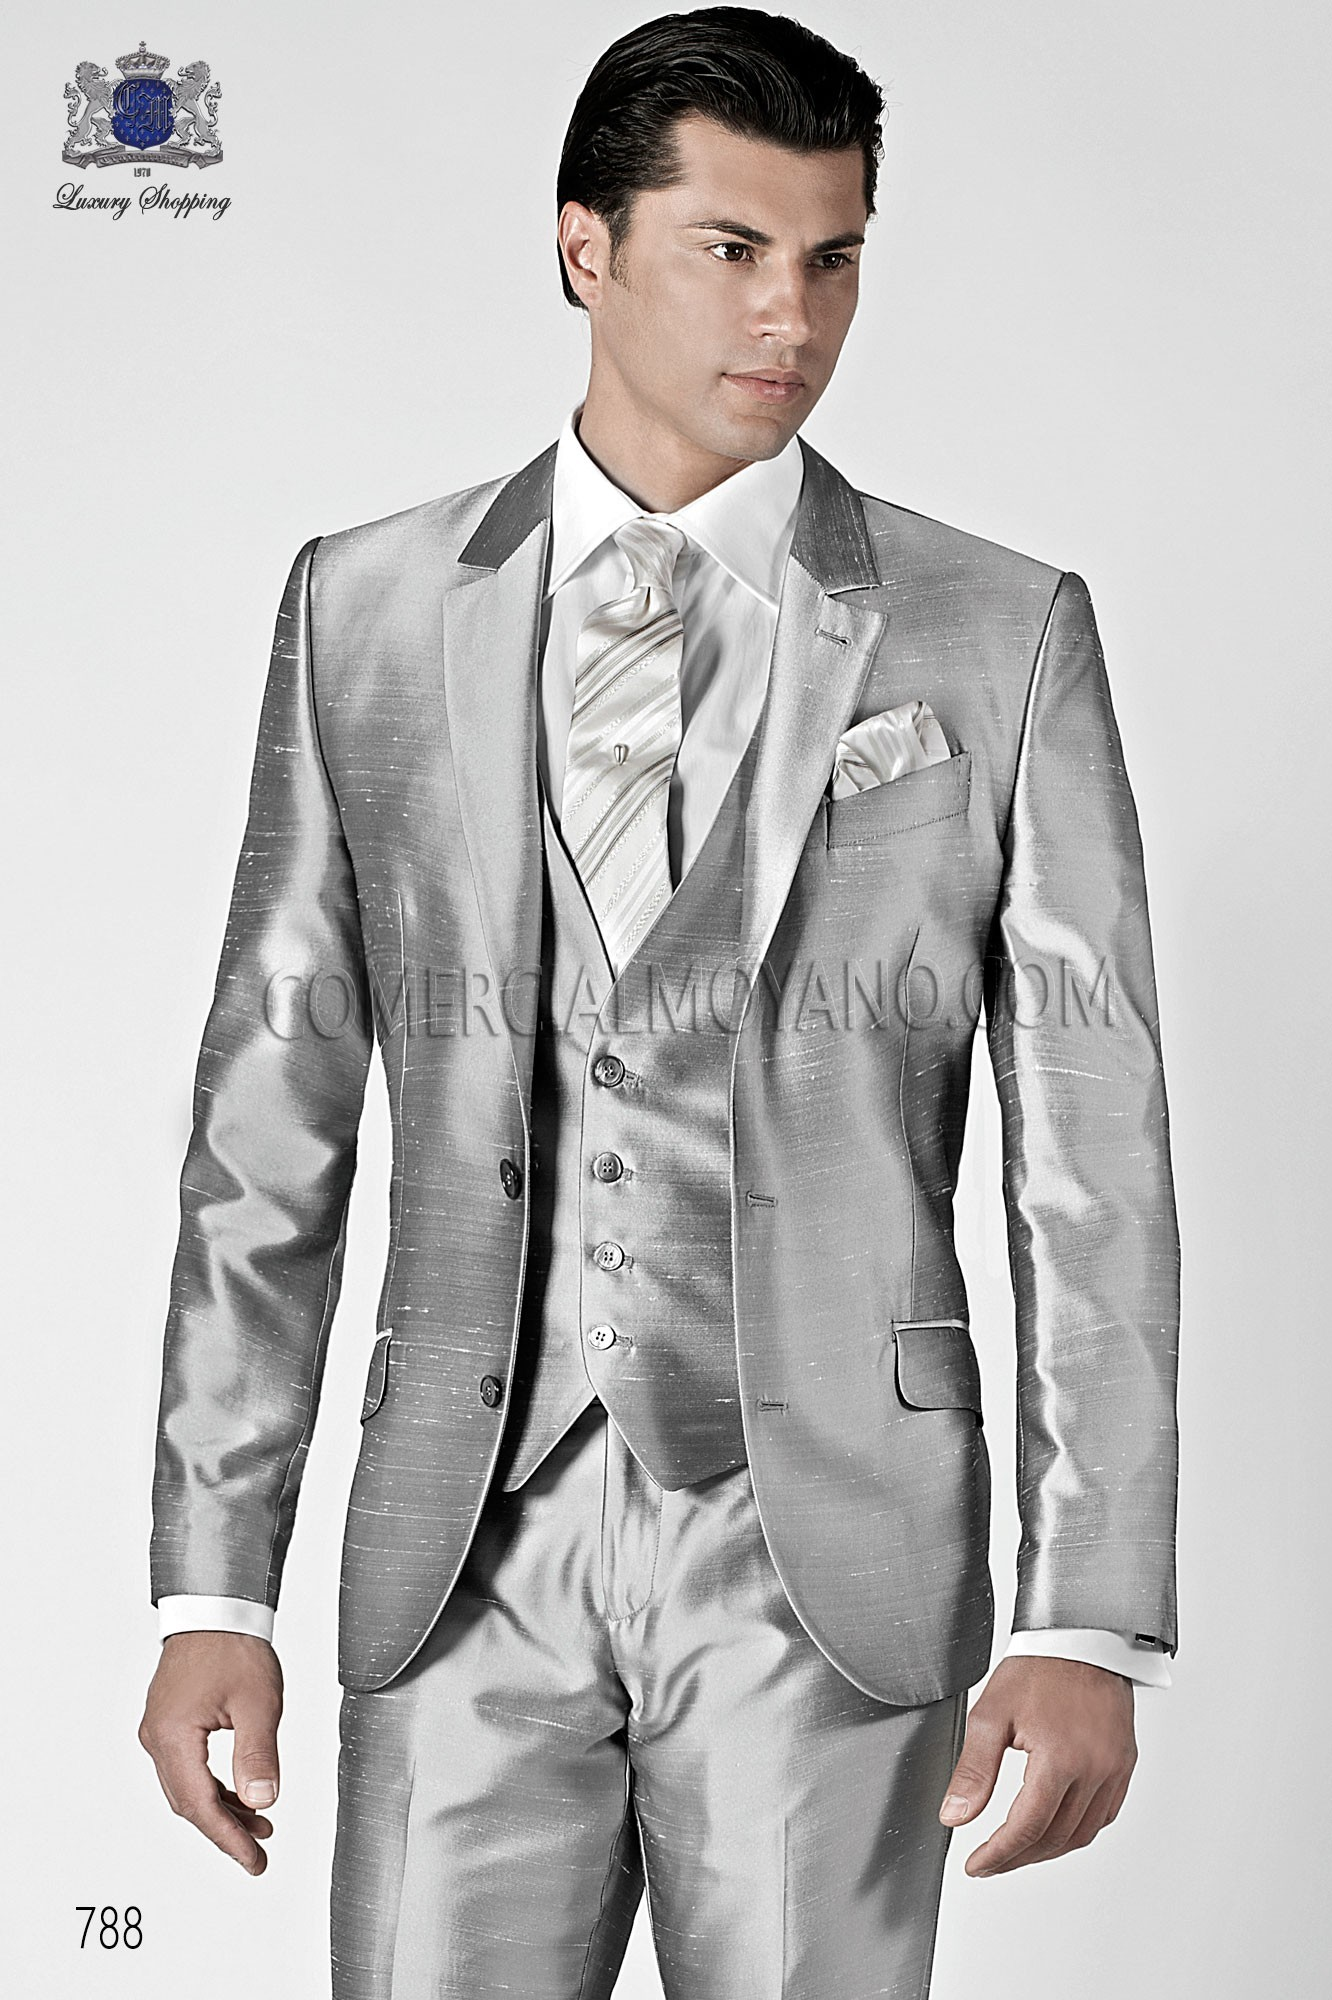 Hipster pearl gray men wedding suit model 788 Ottavio Nuccio Gala